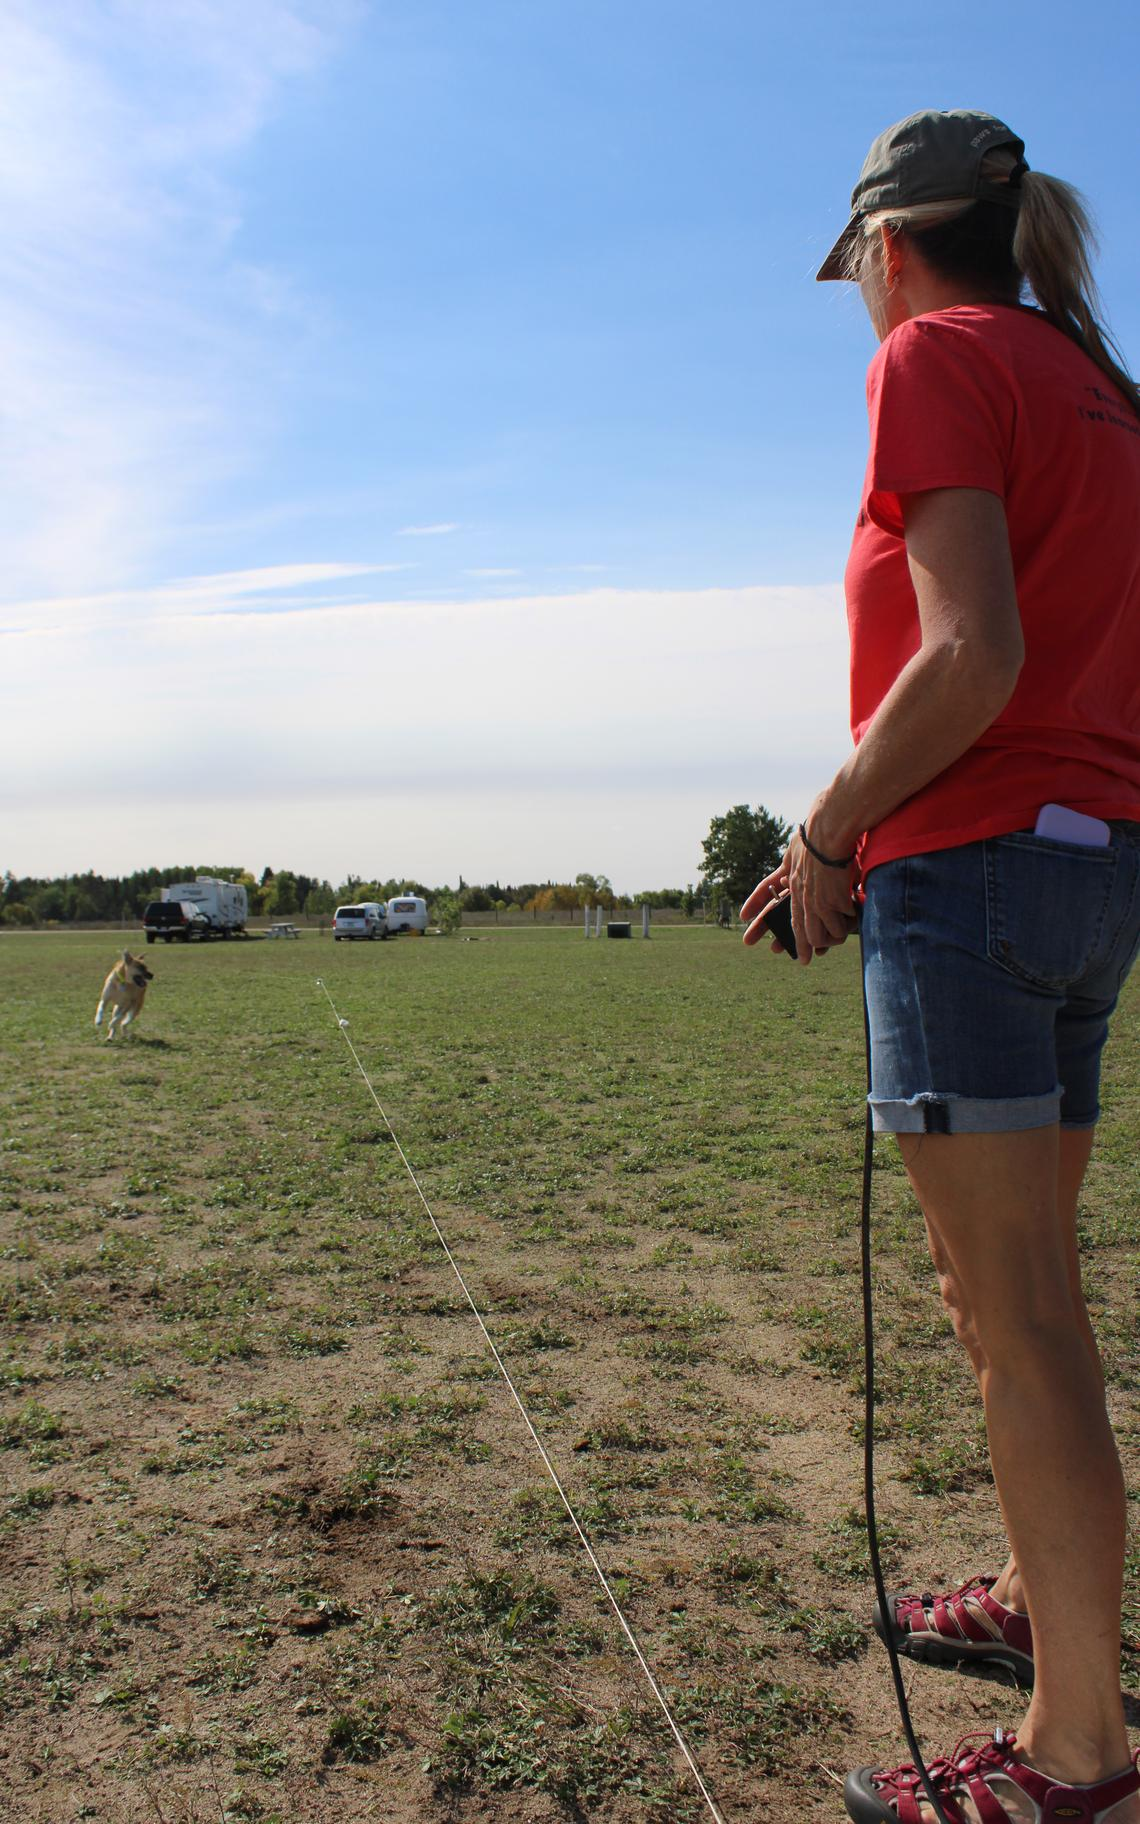 Angie Walther set up a lure coursing fun run at the Bemidji show. Dogs clearly enjoyed chasing the lure (a plastic bag) along a zig-zag path.